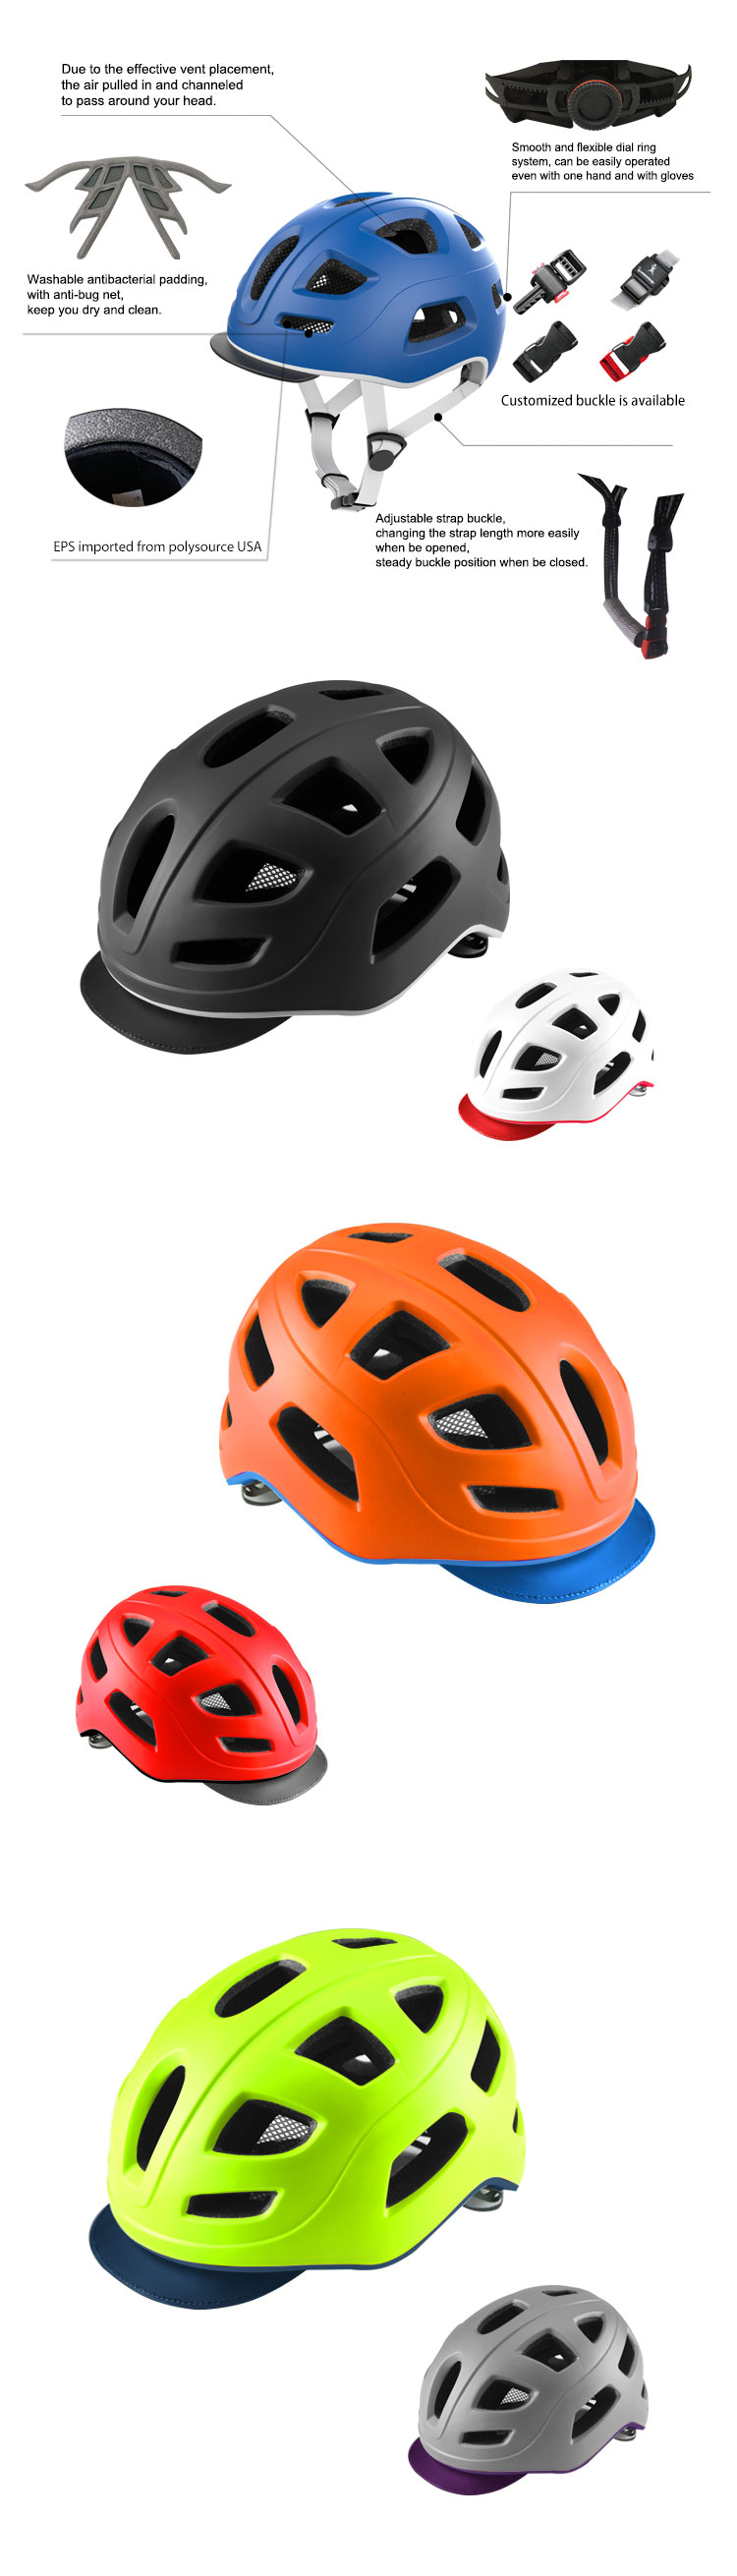 Custom Bike Helmet With Removable Led Safety Light For City Riding View Bike Helmet Easetour Product Details From Shanghai Transo Import Export Co Ltd On Alibaba Com